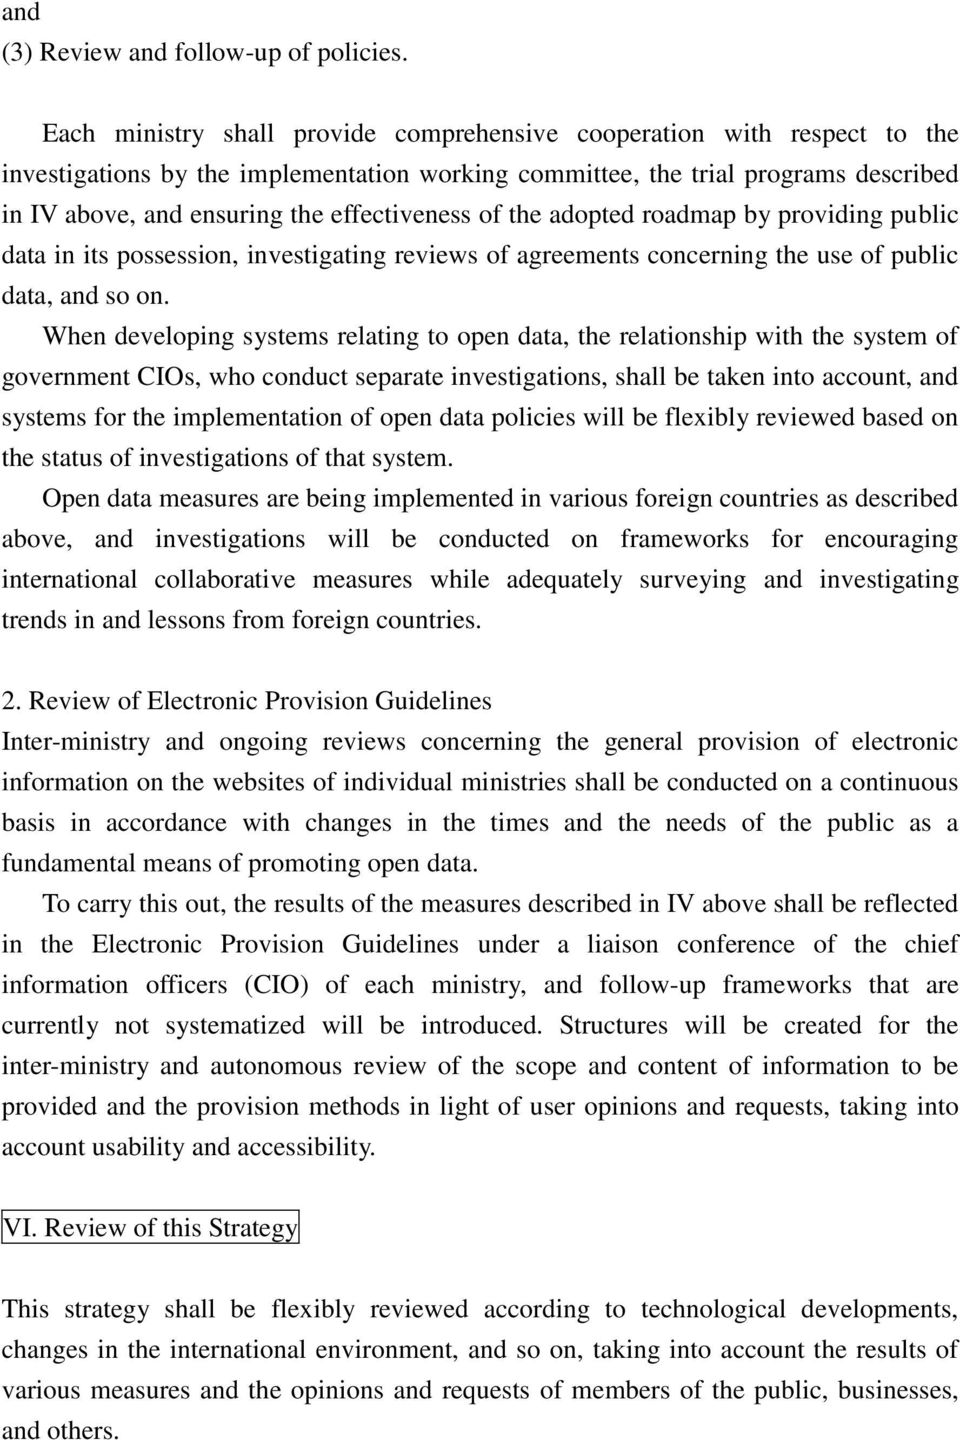 effectiveness of the adopted roadmap by providing public data in its possession, investigating reviews of agreements concerning the use of public data, and so on.